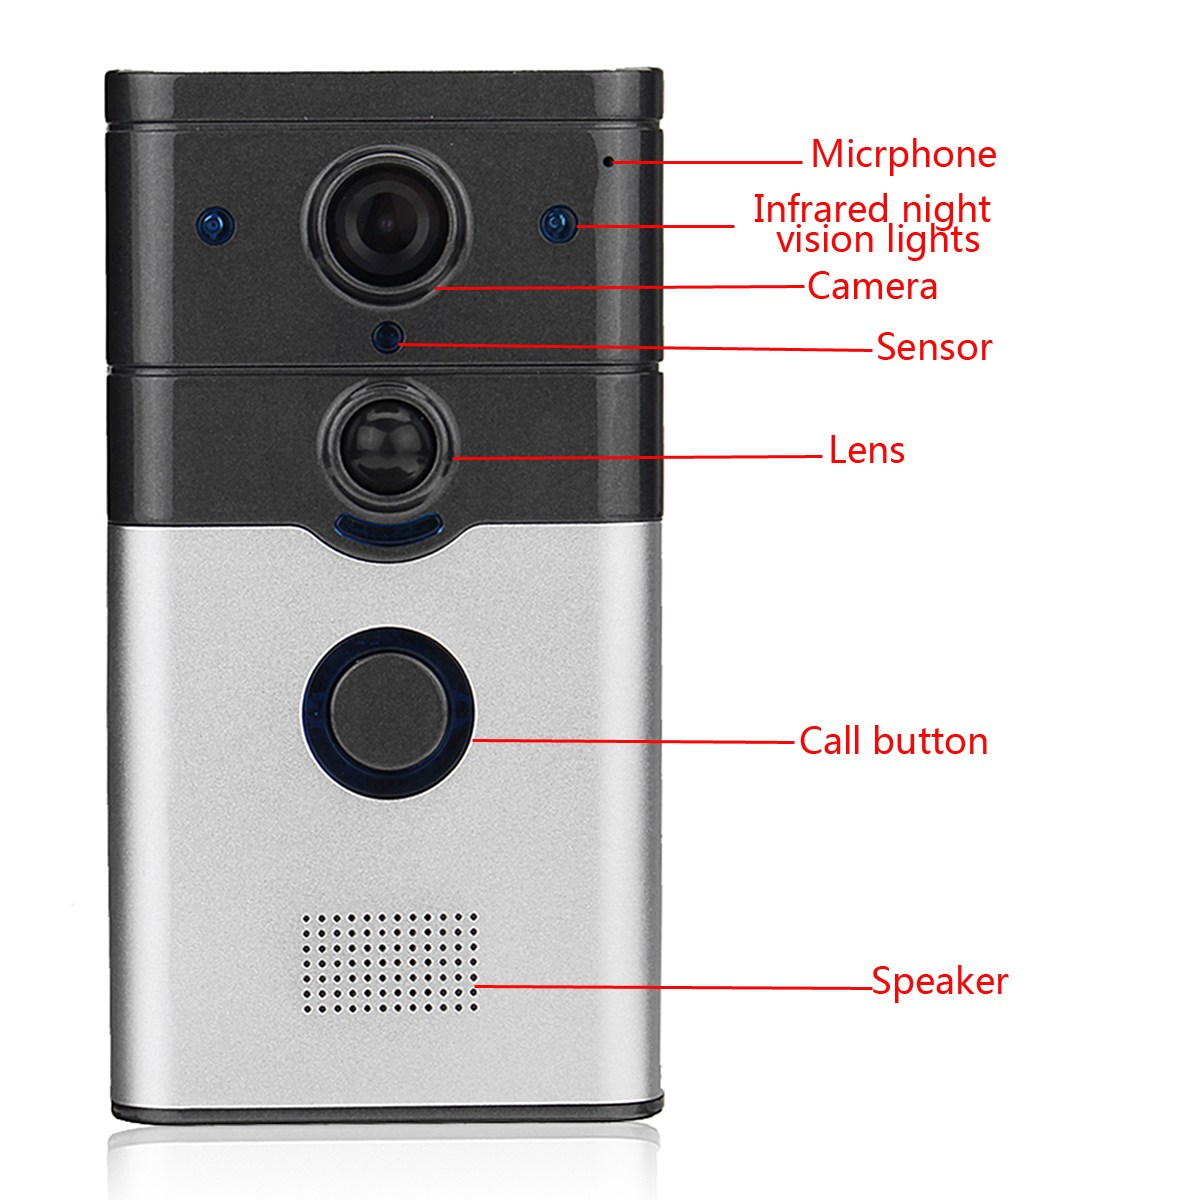 wireless wifi smart home hd video doorbell camera. Black Bedroom Furniture Sets. Home Design Ideas